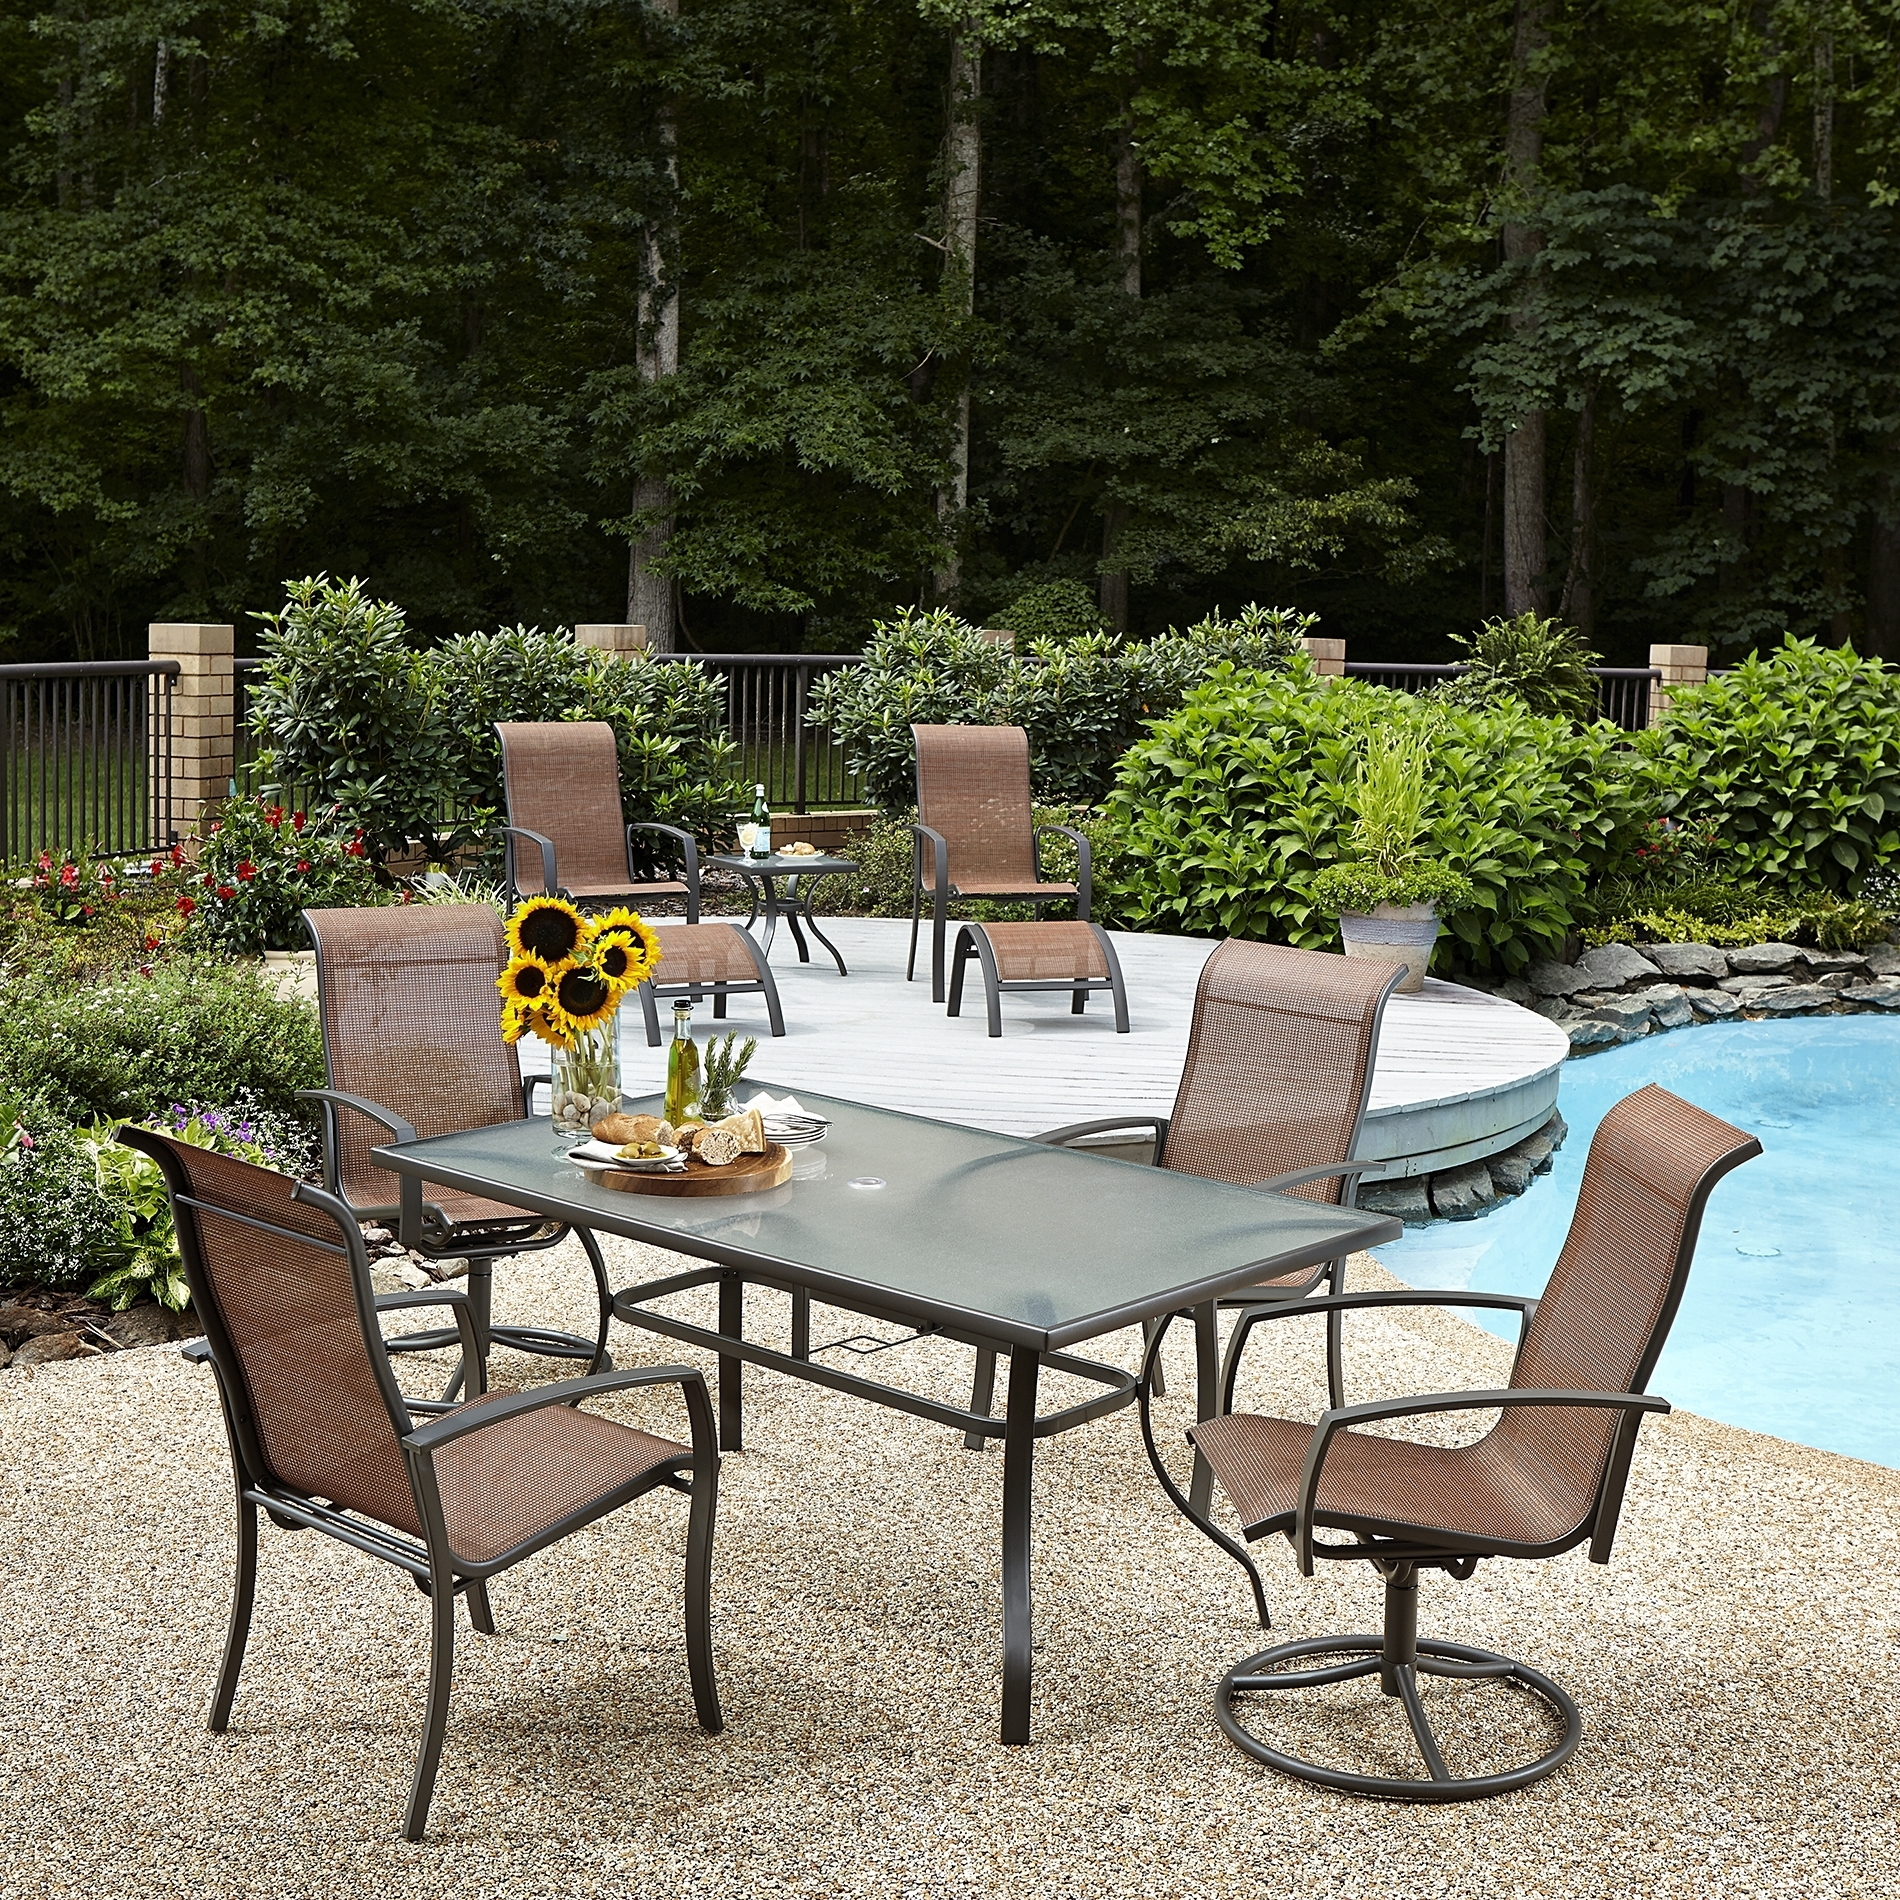 Famous Martha Stewart Conversation Patio Sets With Patio : Imposing Martha Stewart Patio Furniture Pictures Ideas (View 10 of 20)